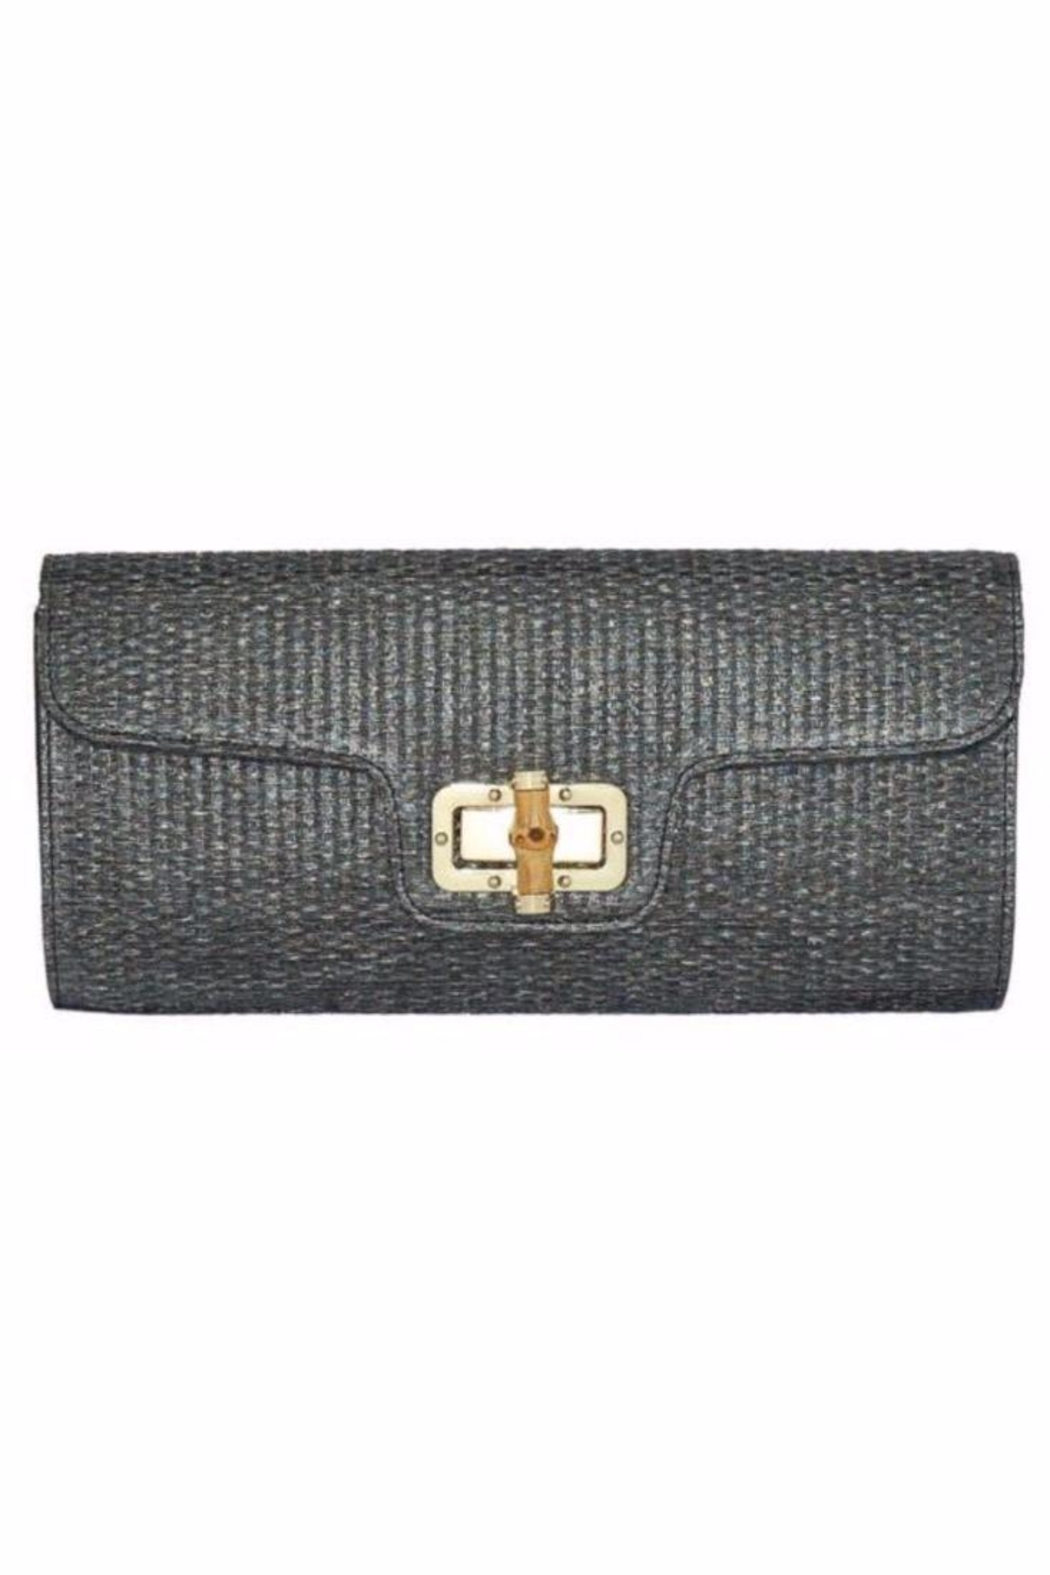 Allie & Chica Black Bamboo Clutch - Main Image